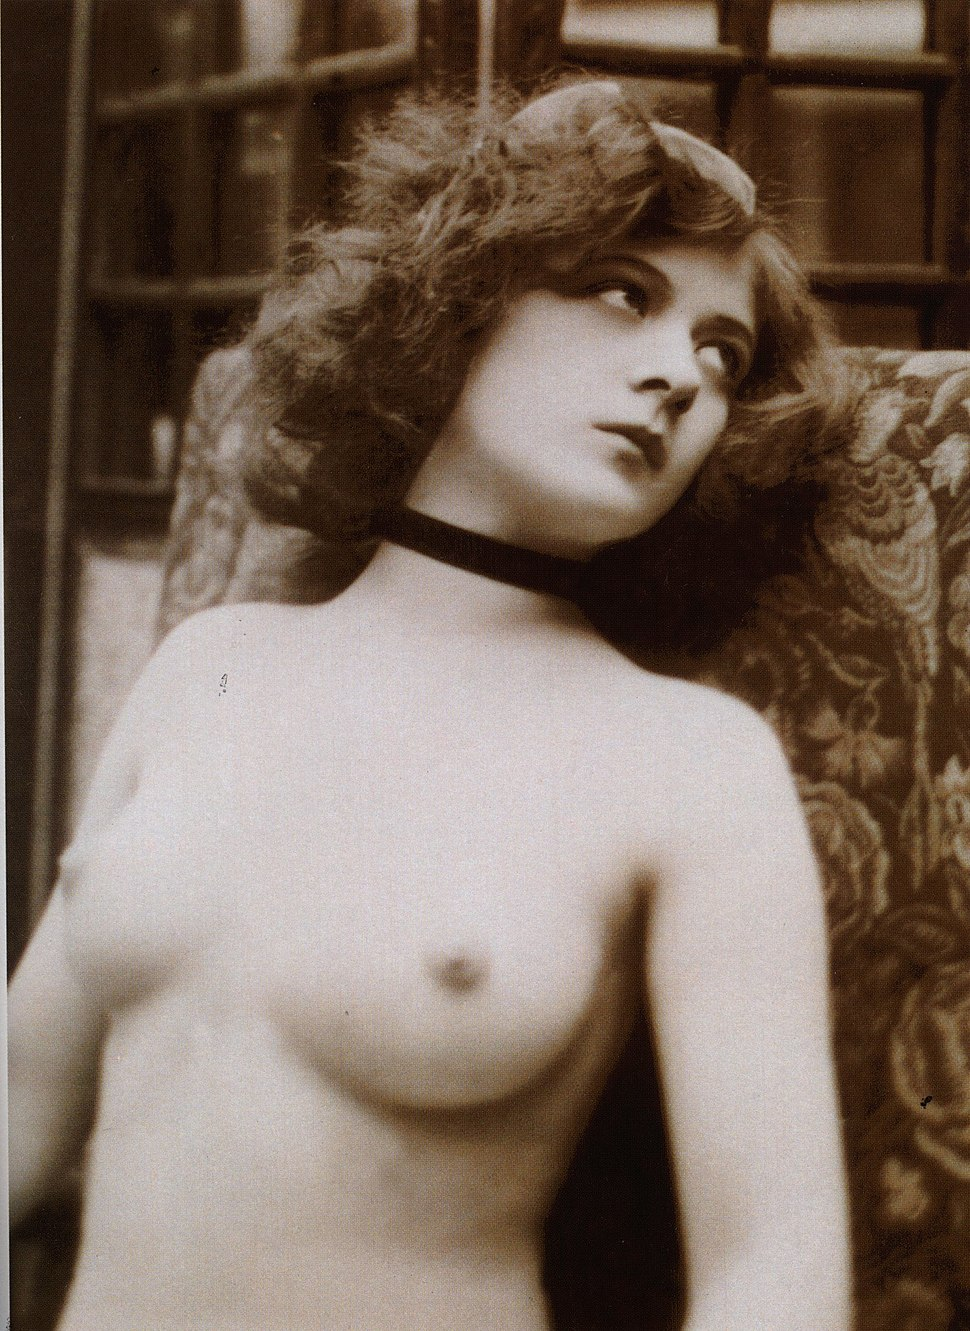 Vintage nude bust photograph of a young denuded lady